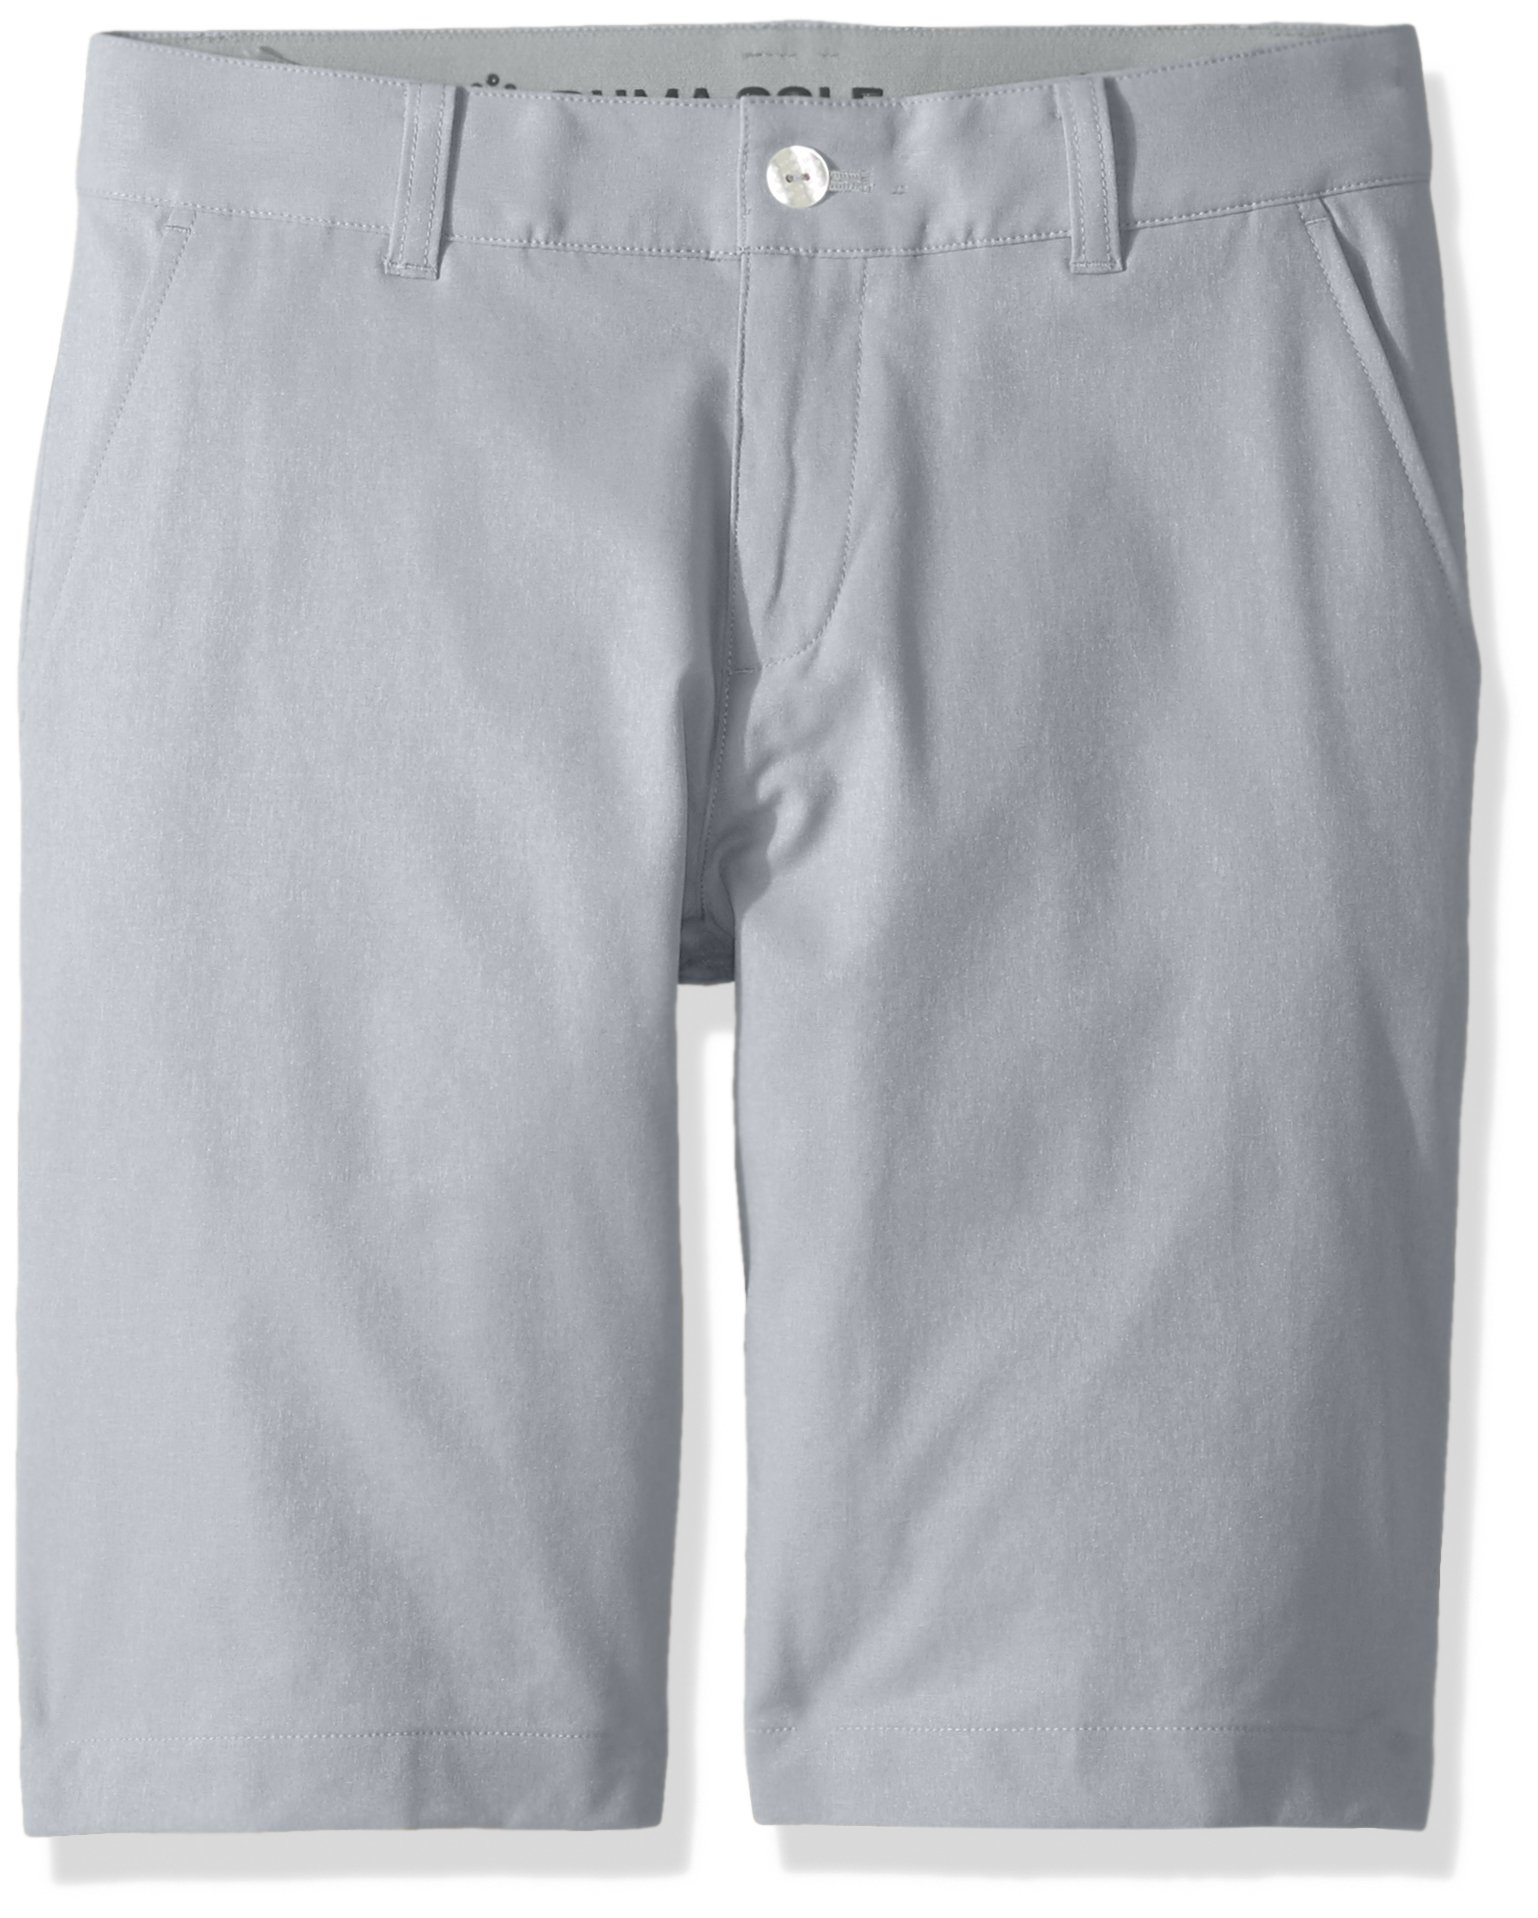 PUMA Golf Teen 2018 Boy's Heather Pounce Short, Quarry, X-Large by PUMA